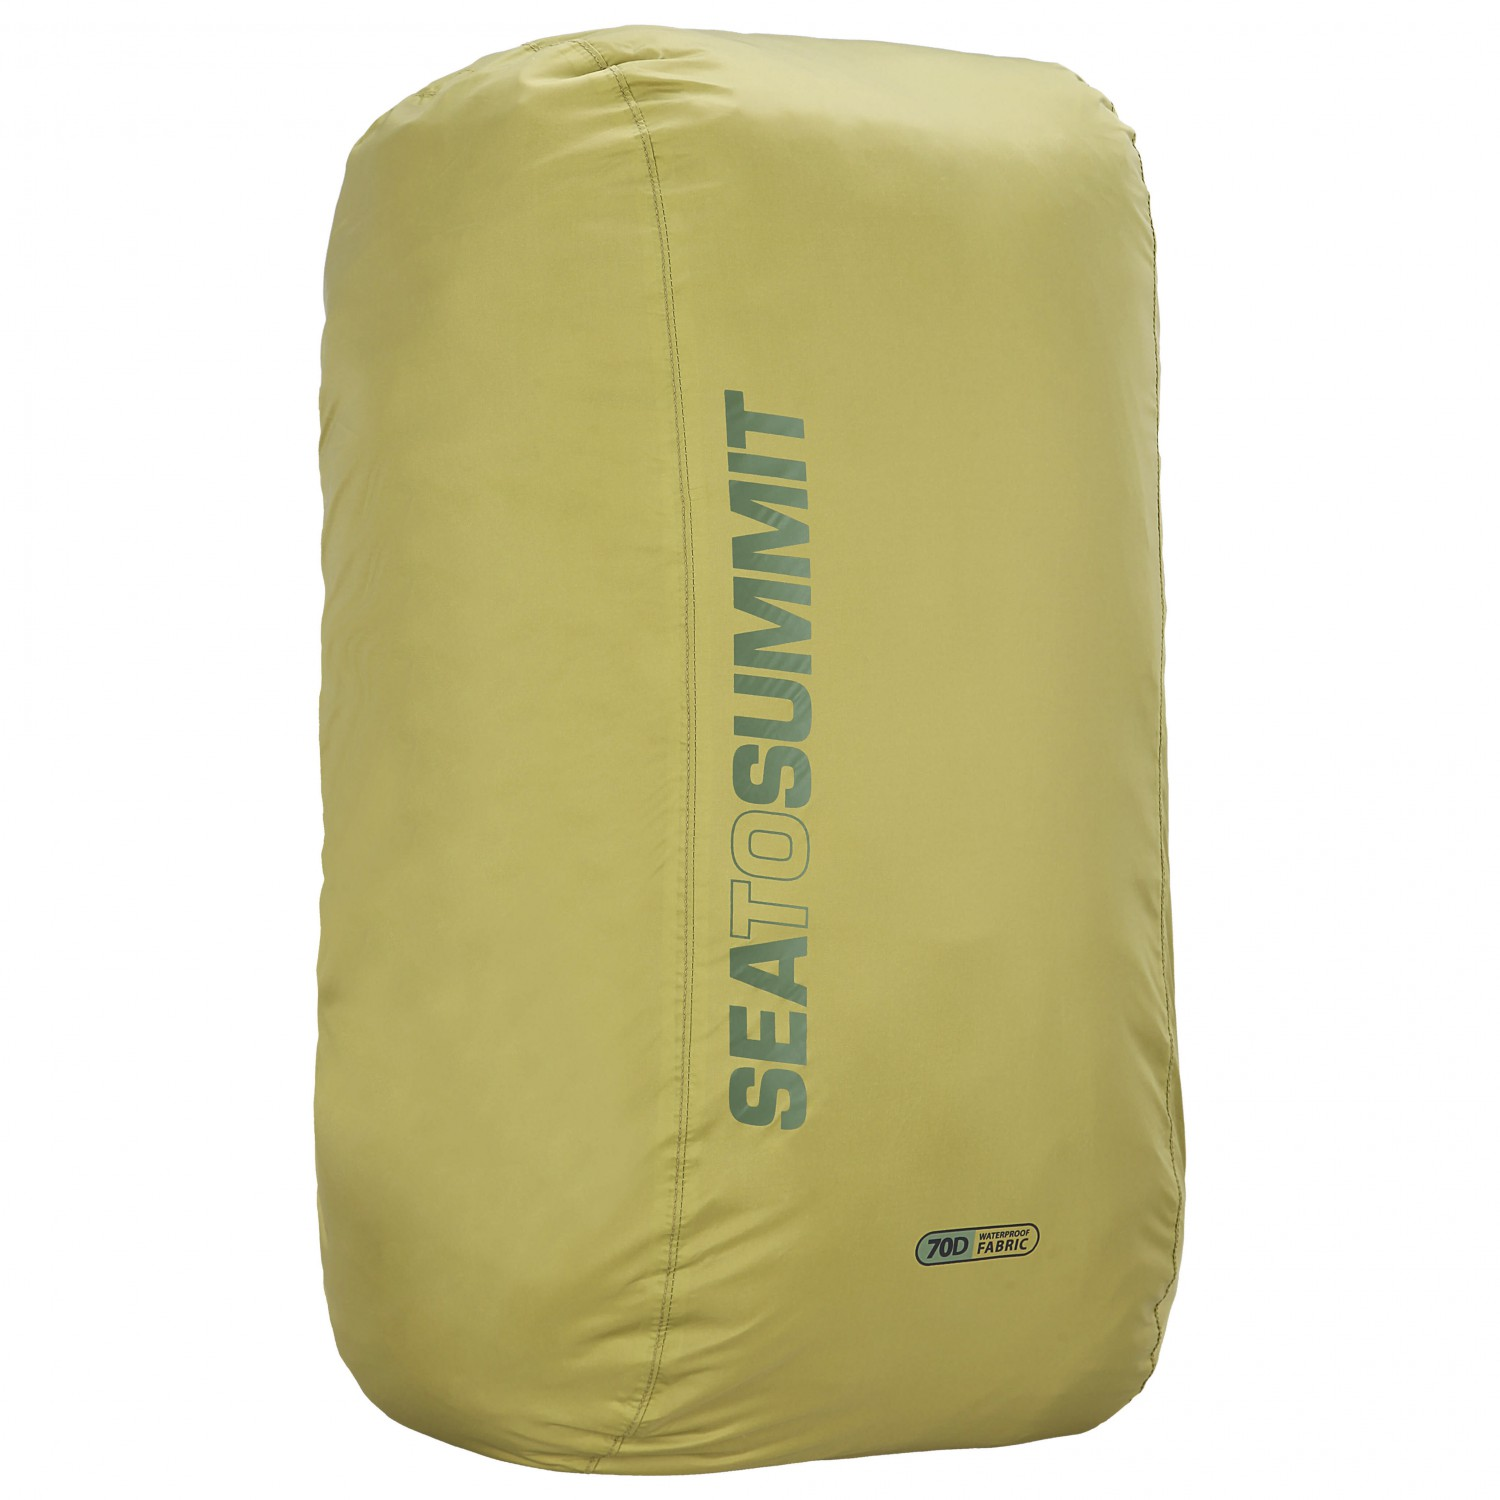 032157145d4d Sea to Summit - Pack Cover Nylon - Rain cover